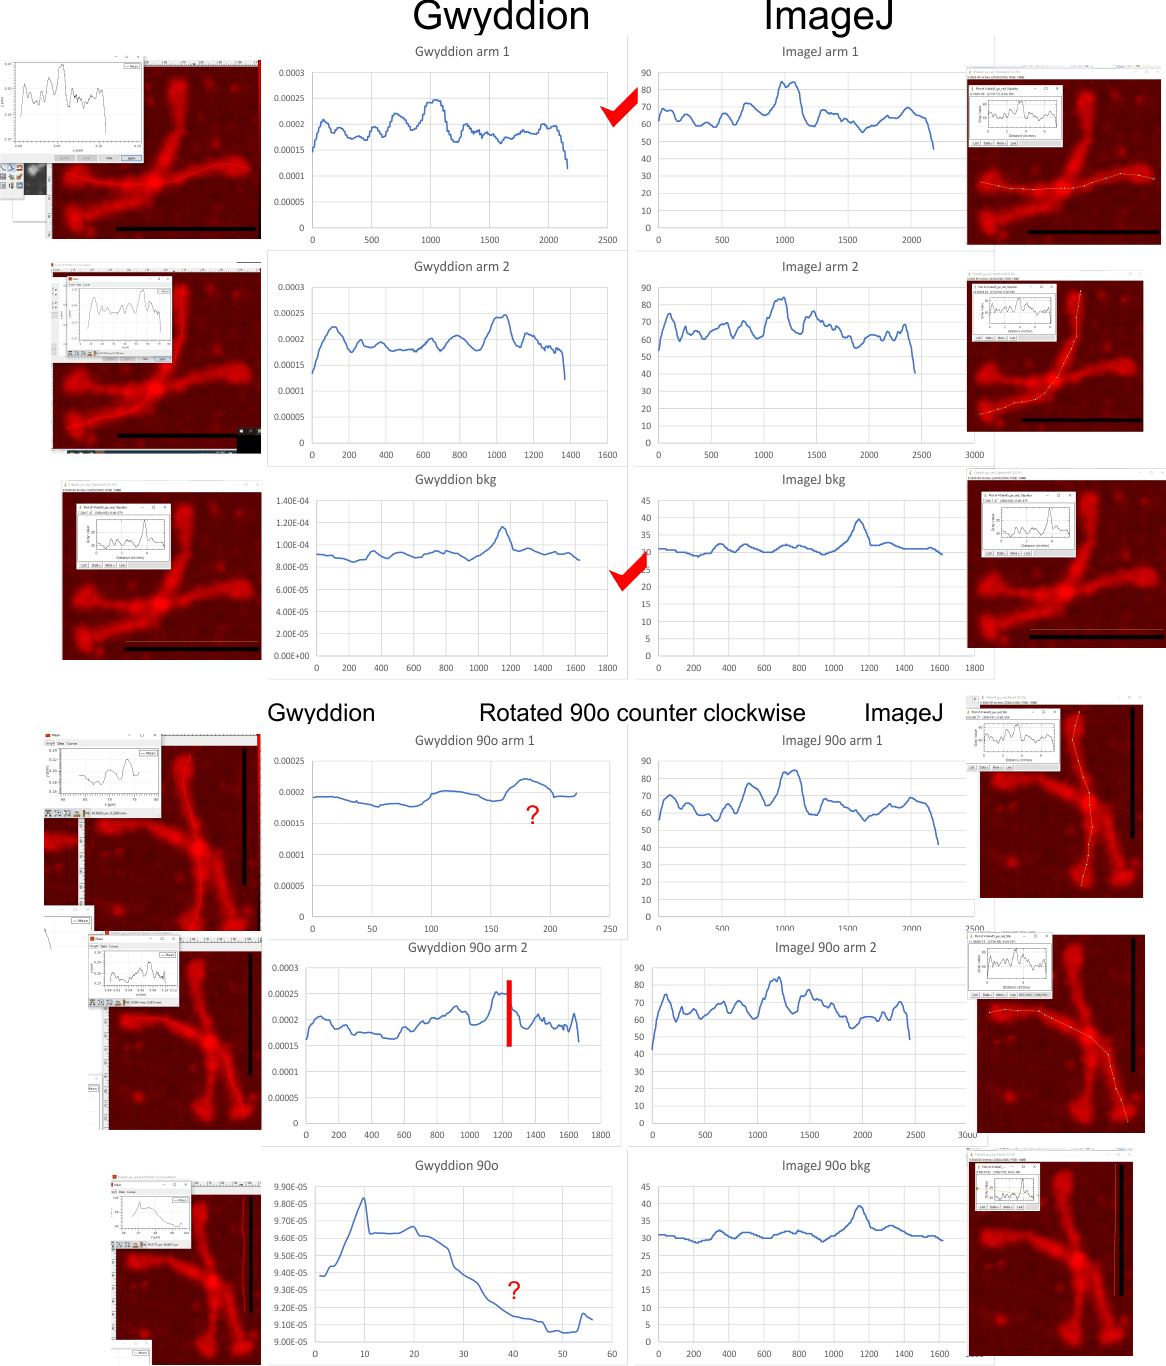 comparing LUT plots in ImageJ and Gwyddion